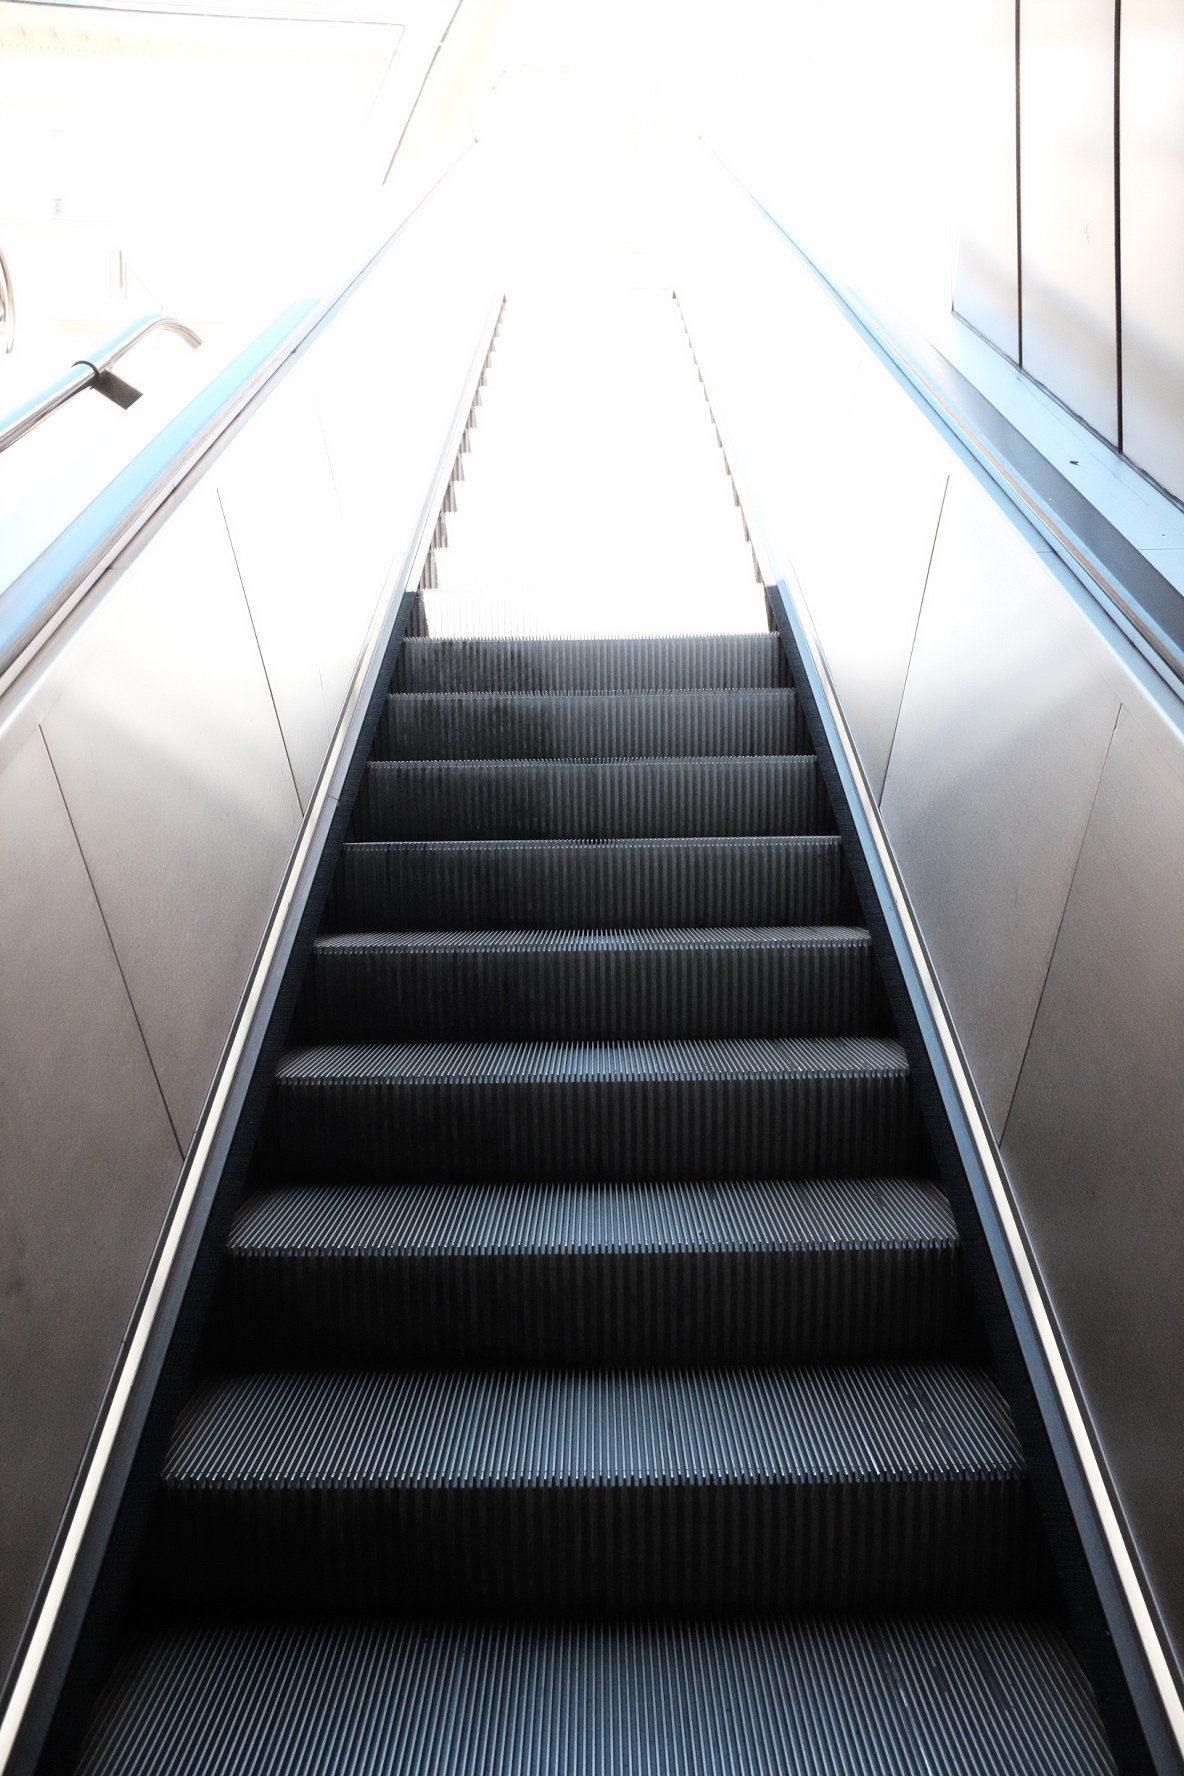 Escalator to heaven?, Wien 2019